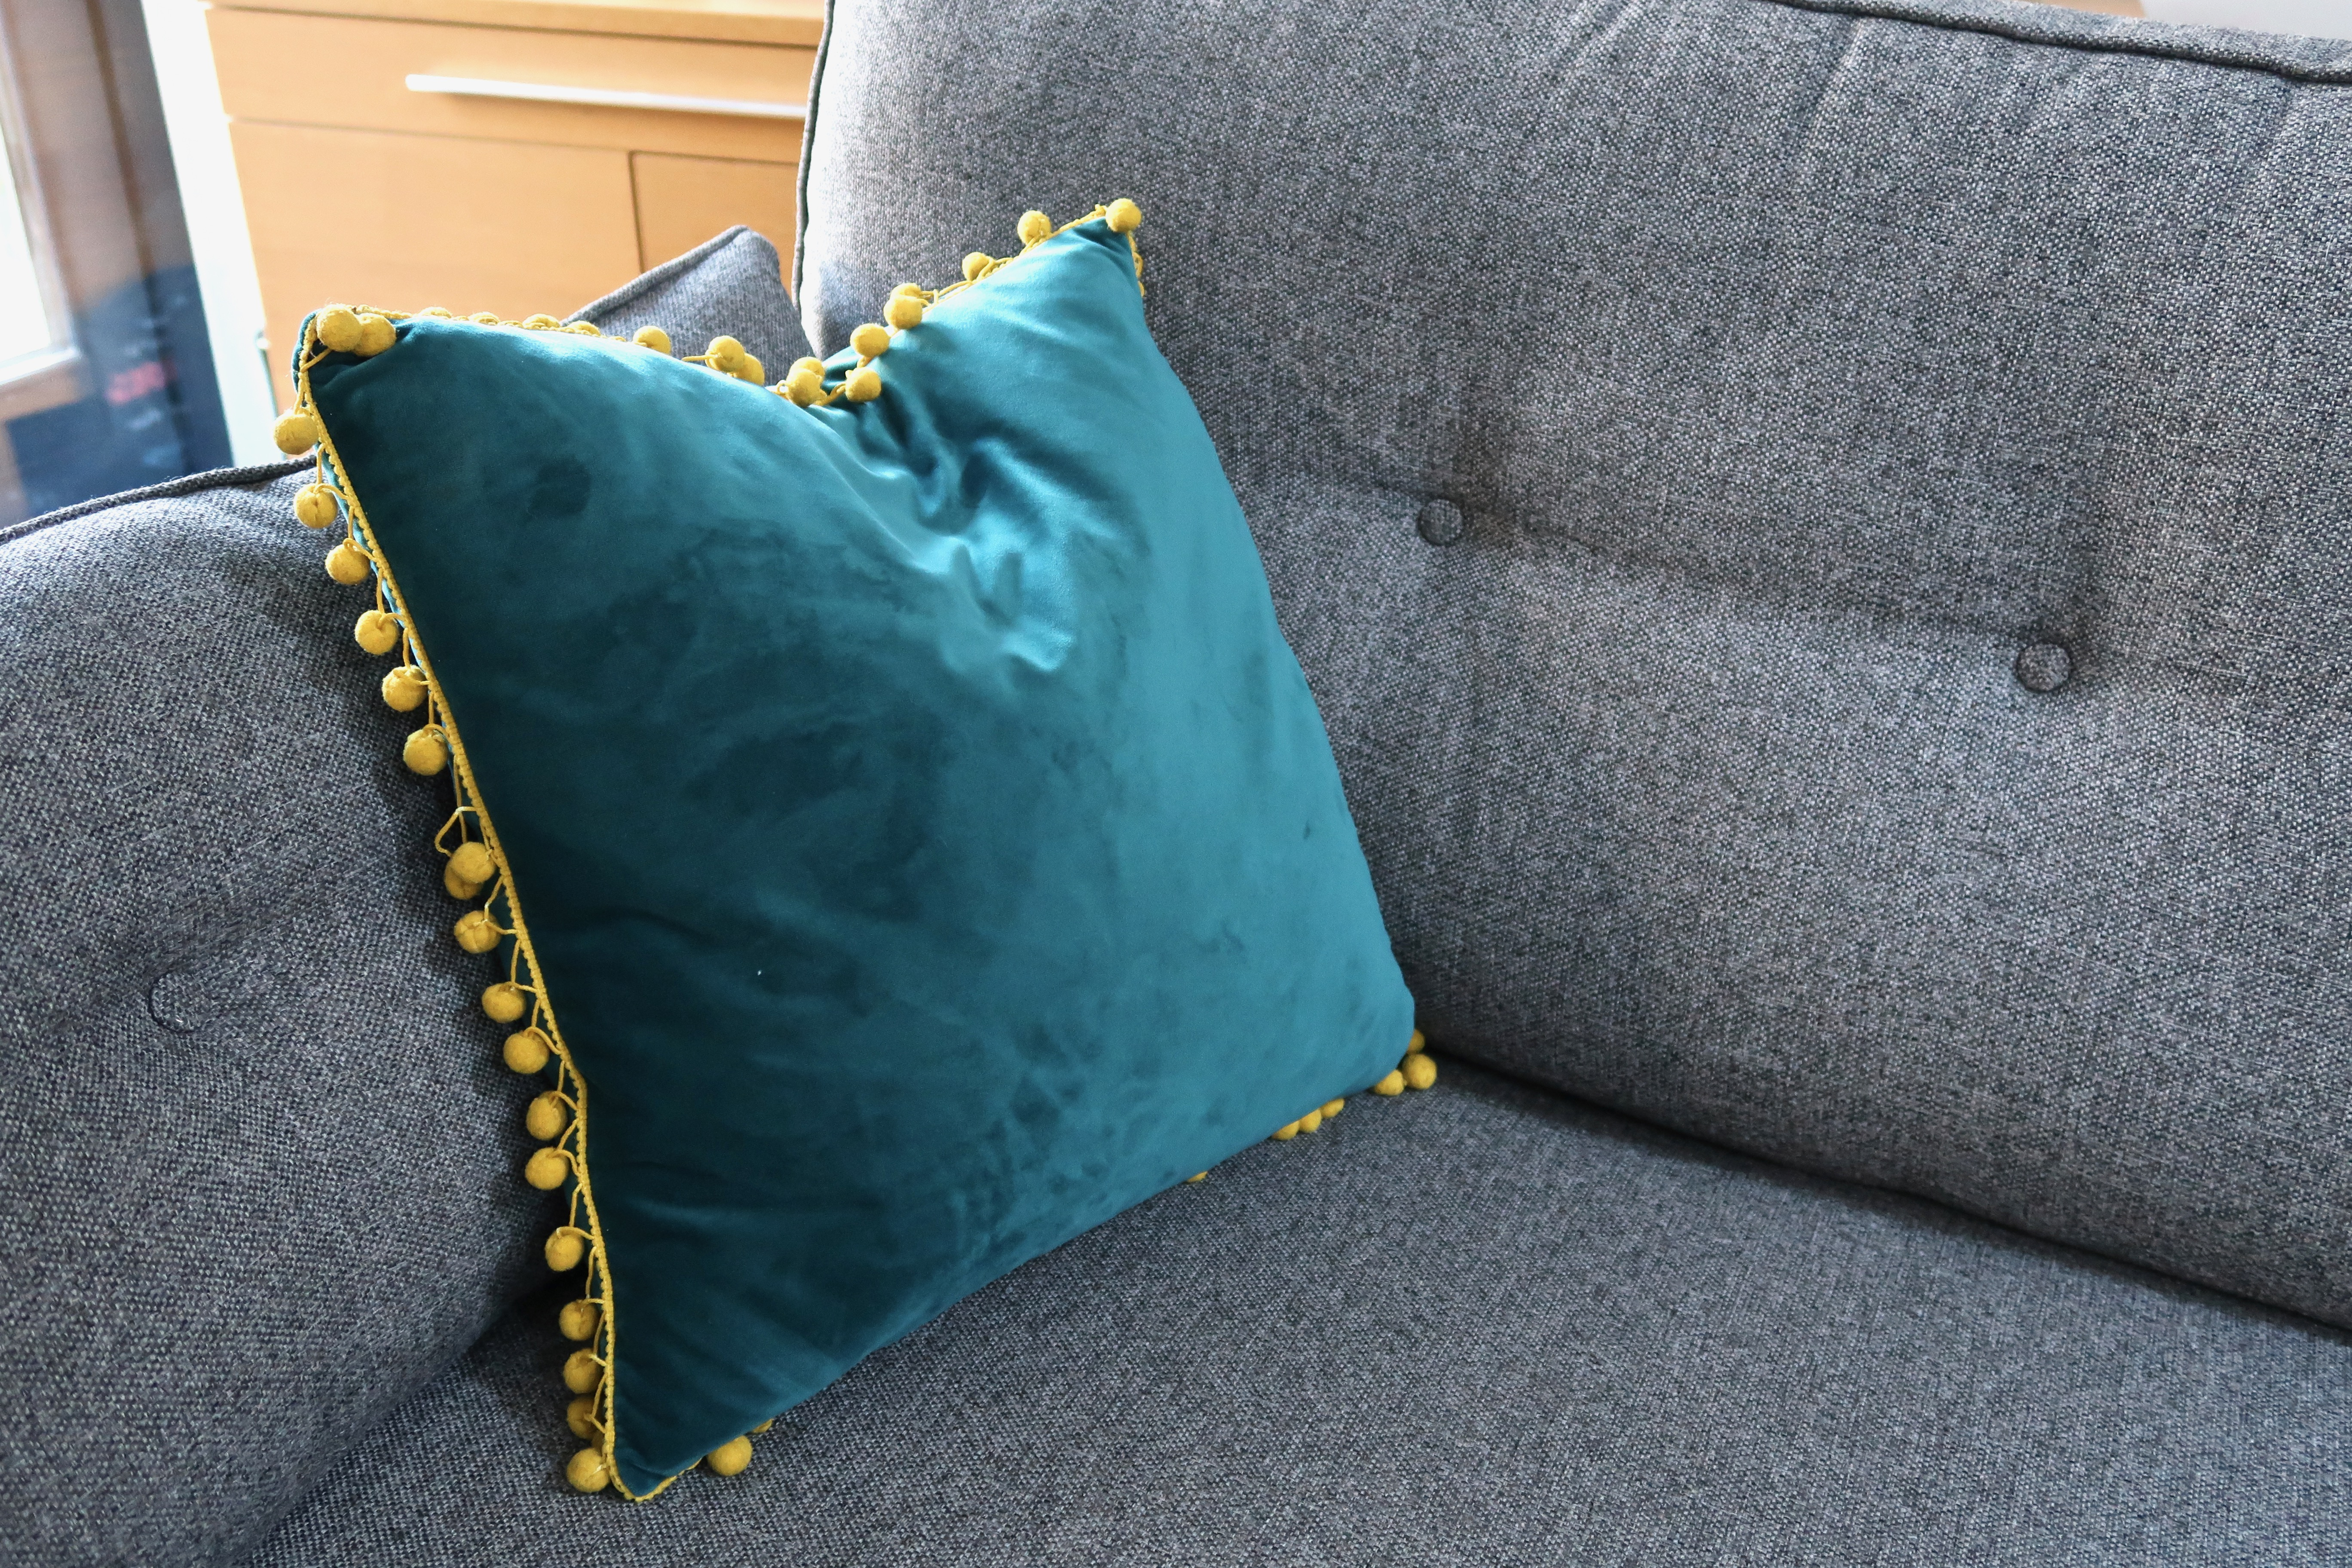 French Connection Zinc sofa teal velvet cushion